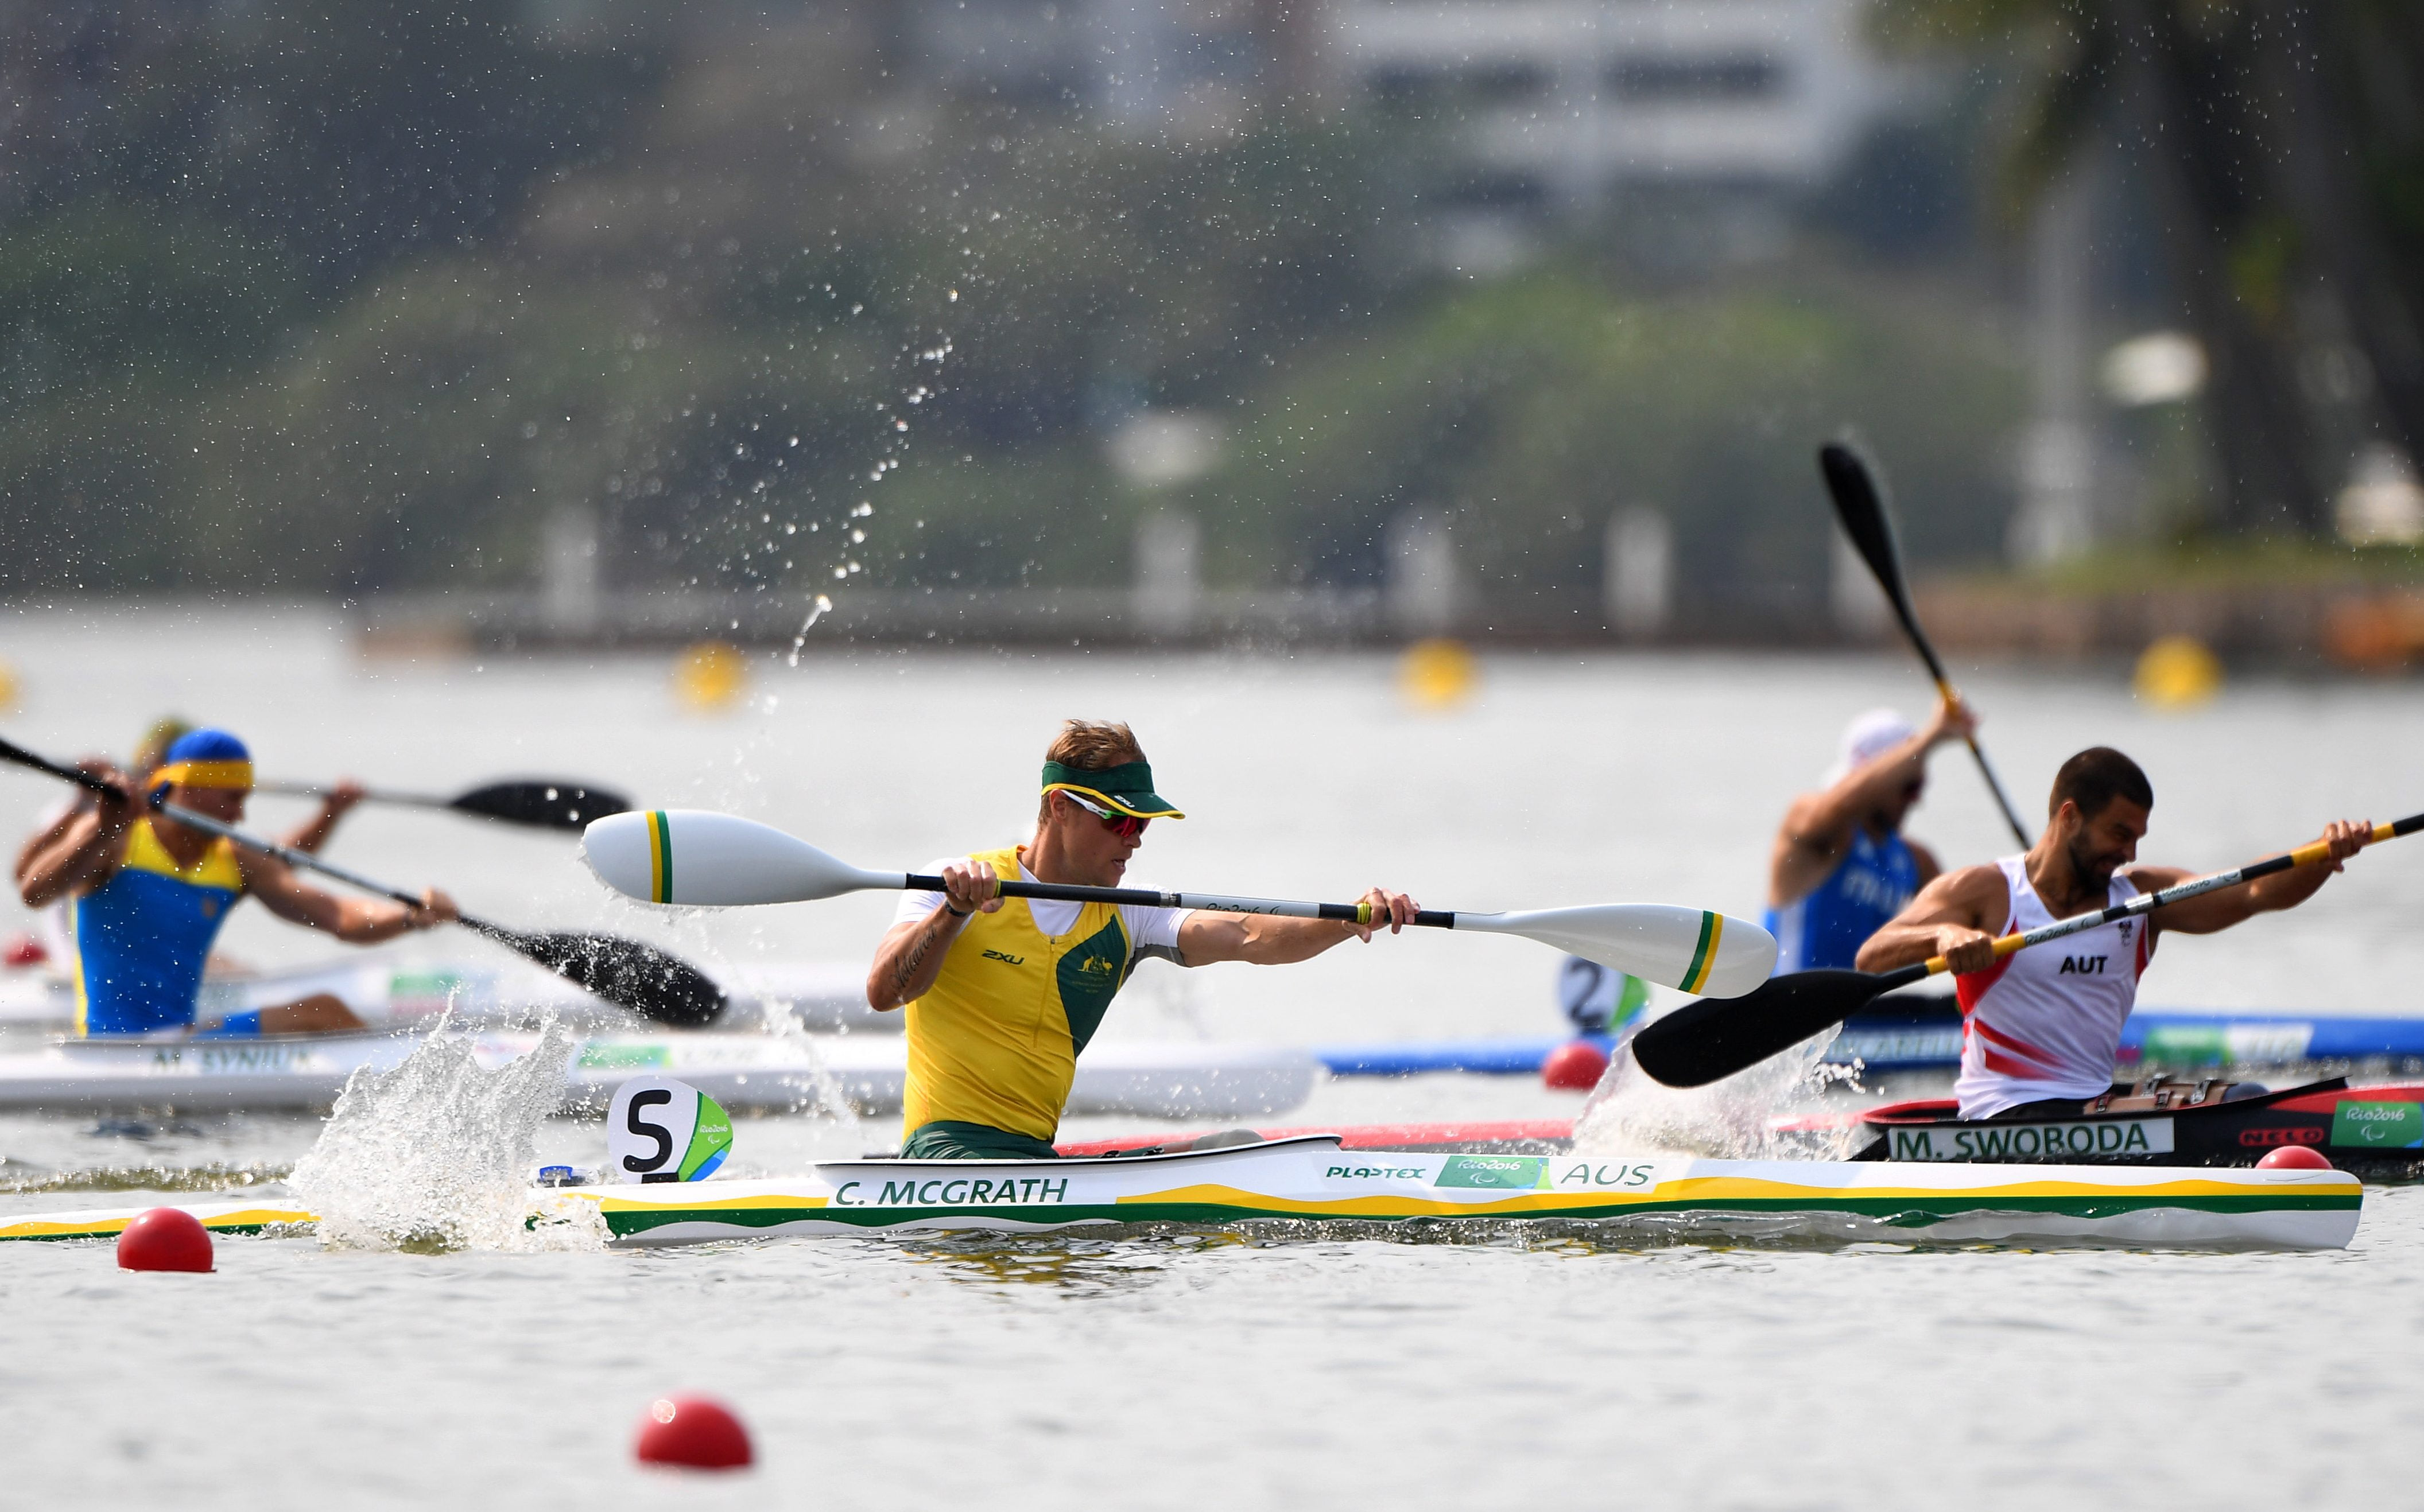 McGrath shows his class at Para-canoe World Cup